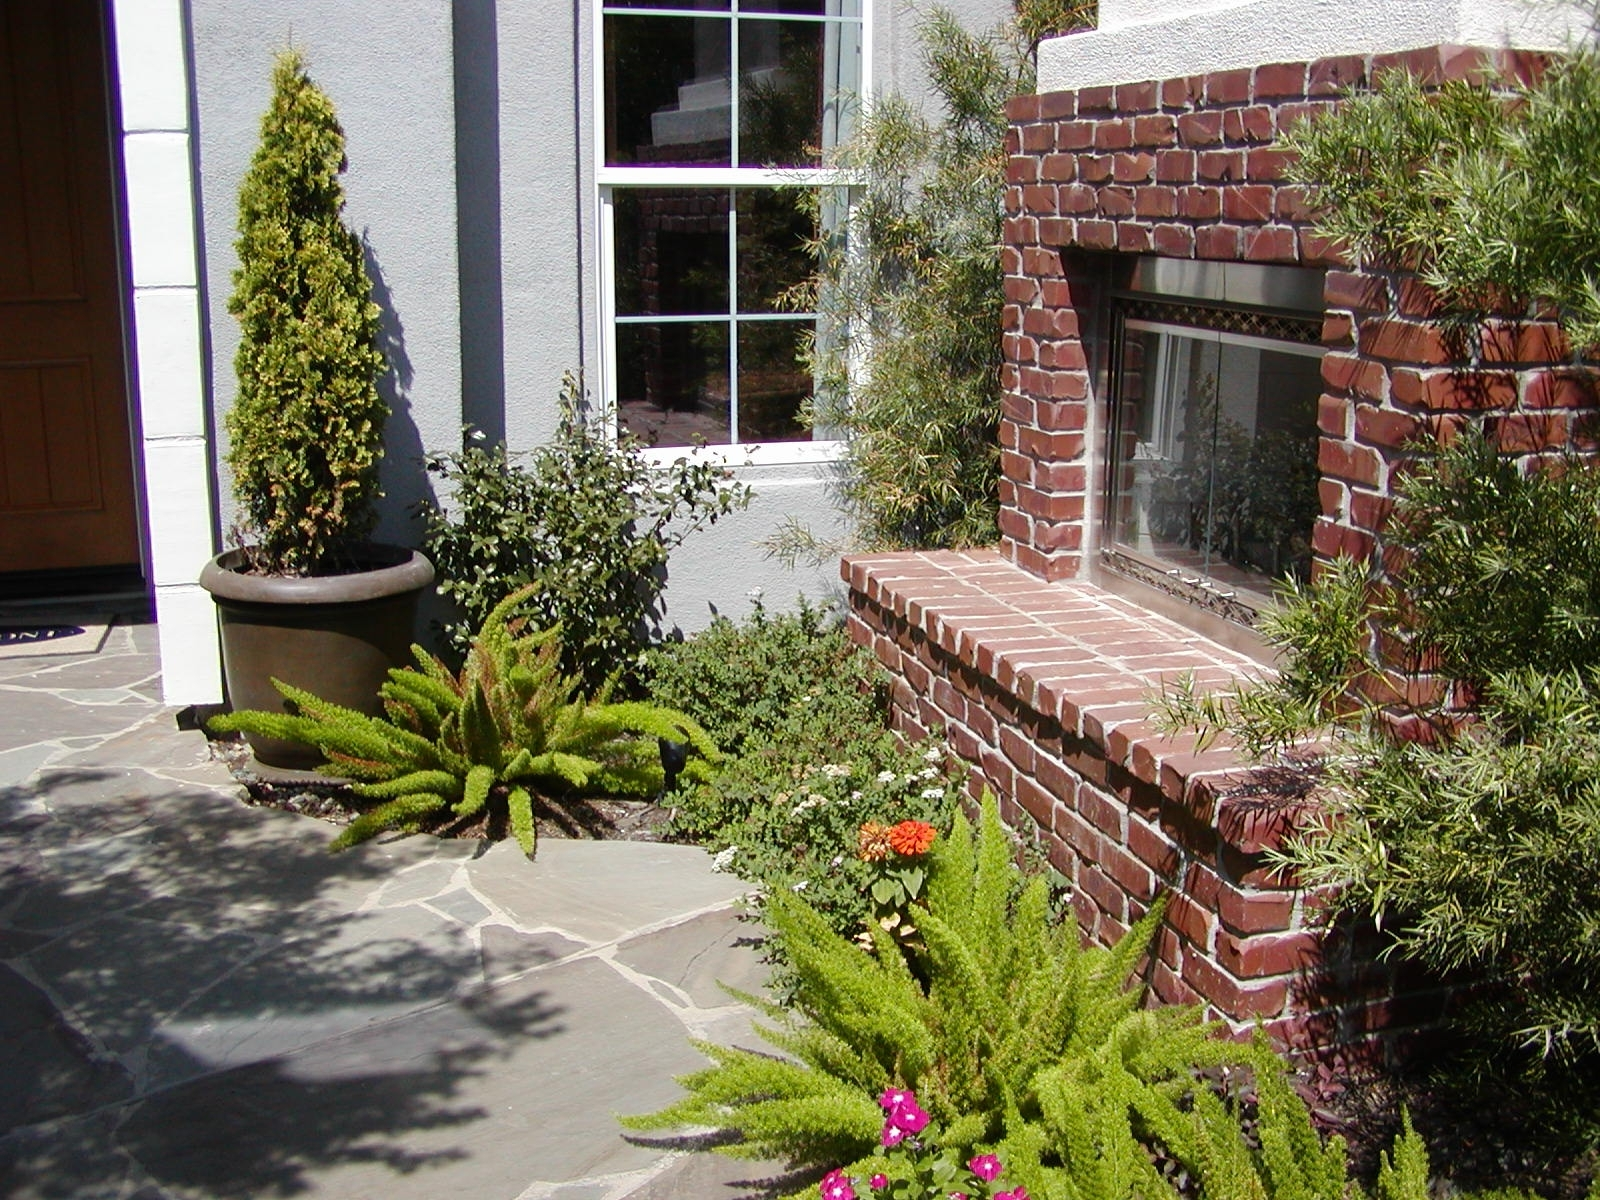 Image of: Why Go Drought Tolerant Sacramento Landscape For Drought Tolerant Landscape Ideas Popular Drought Tolerant Landscape Ideas